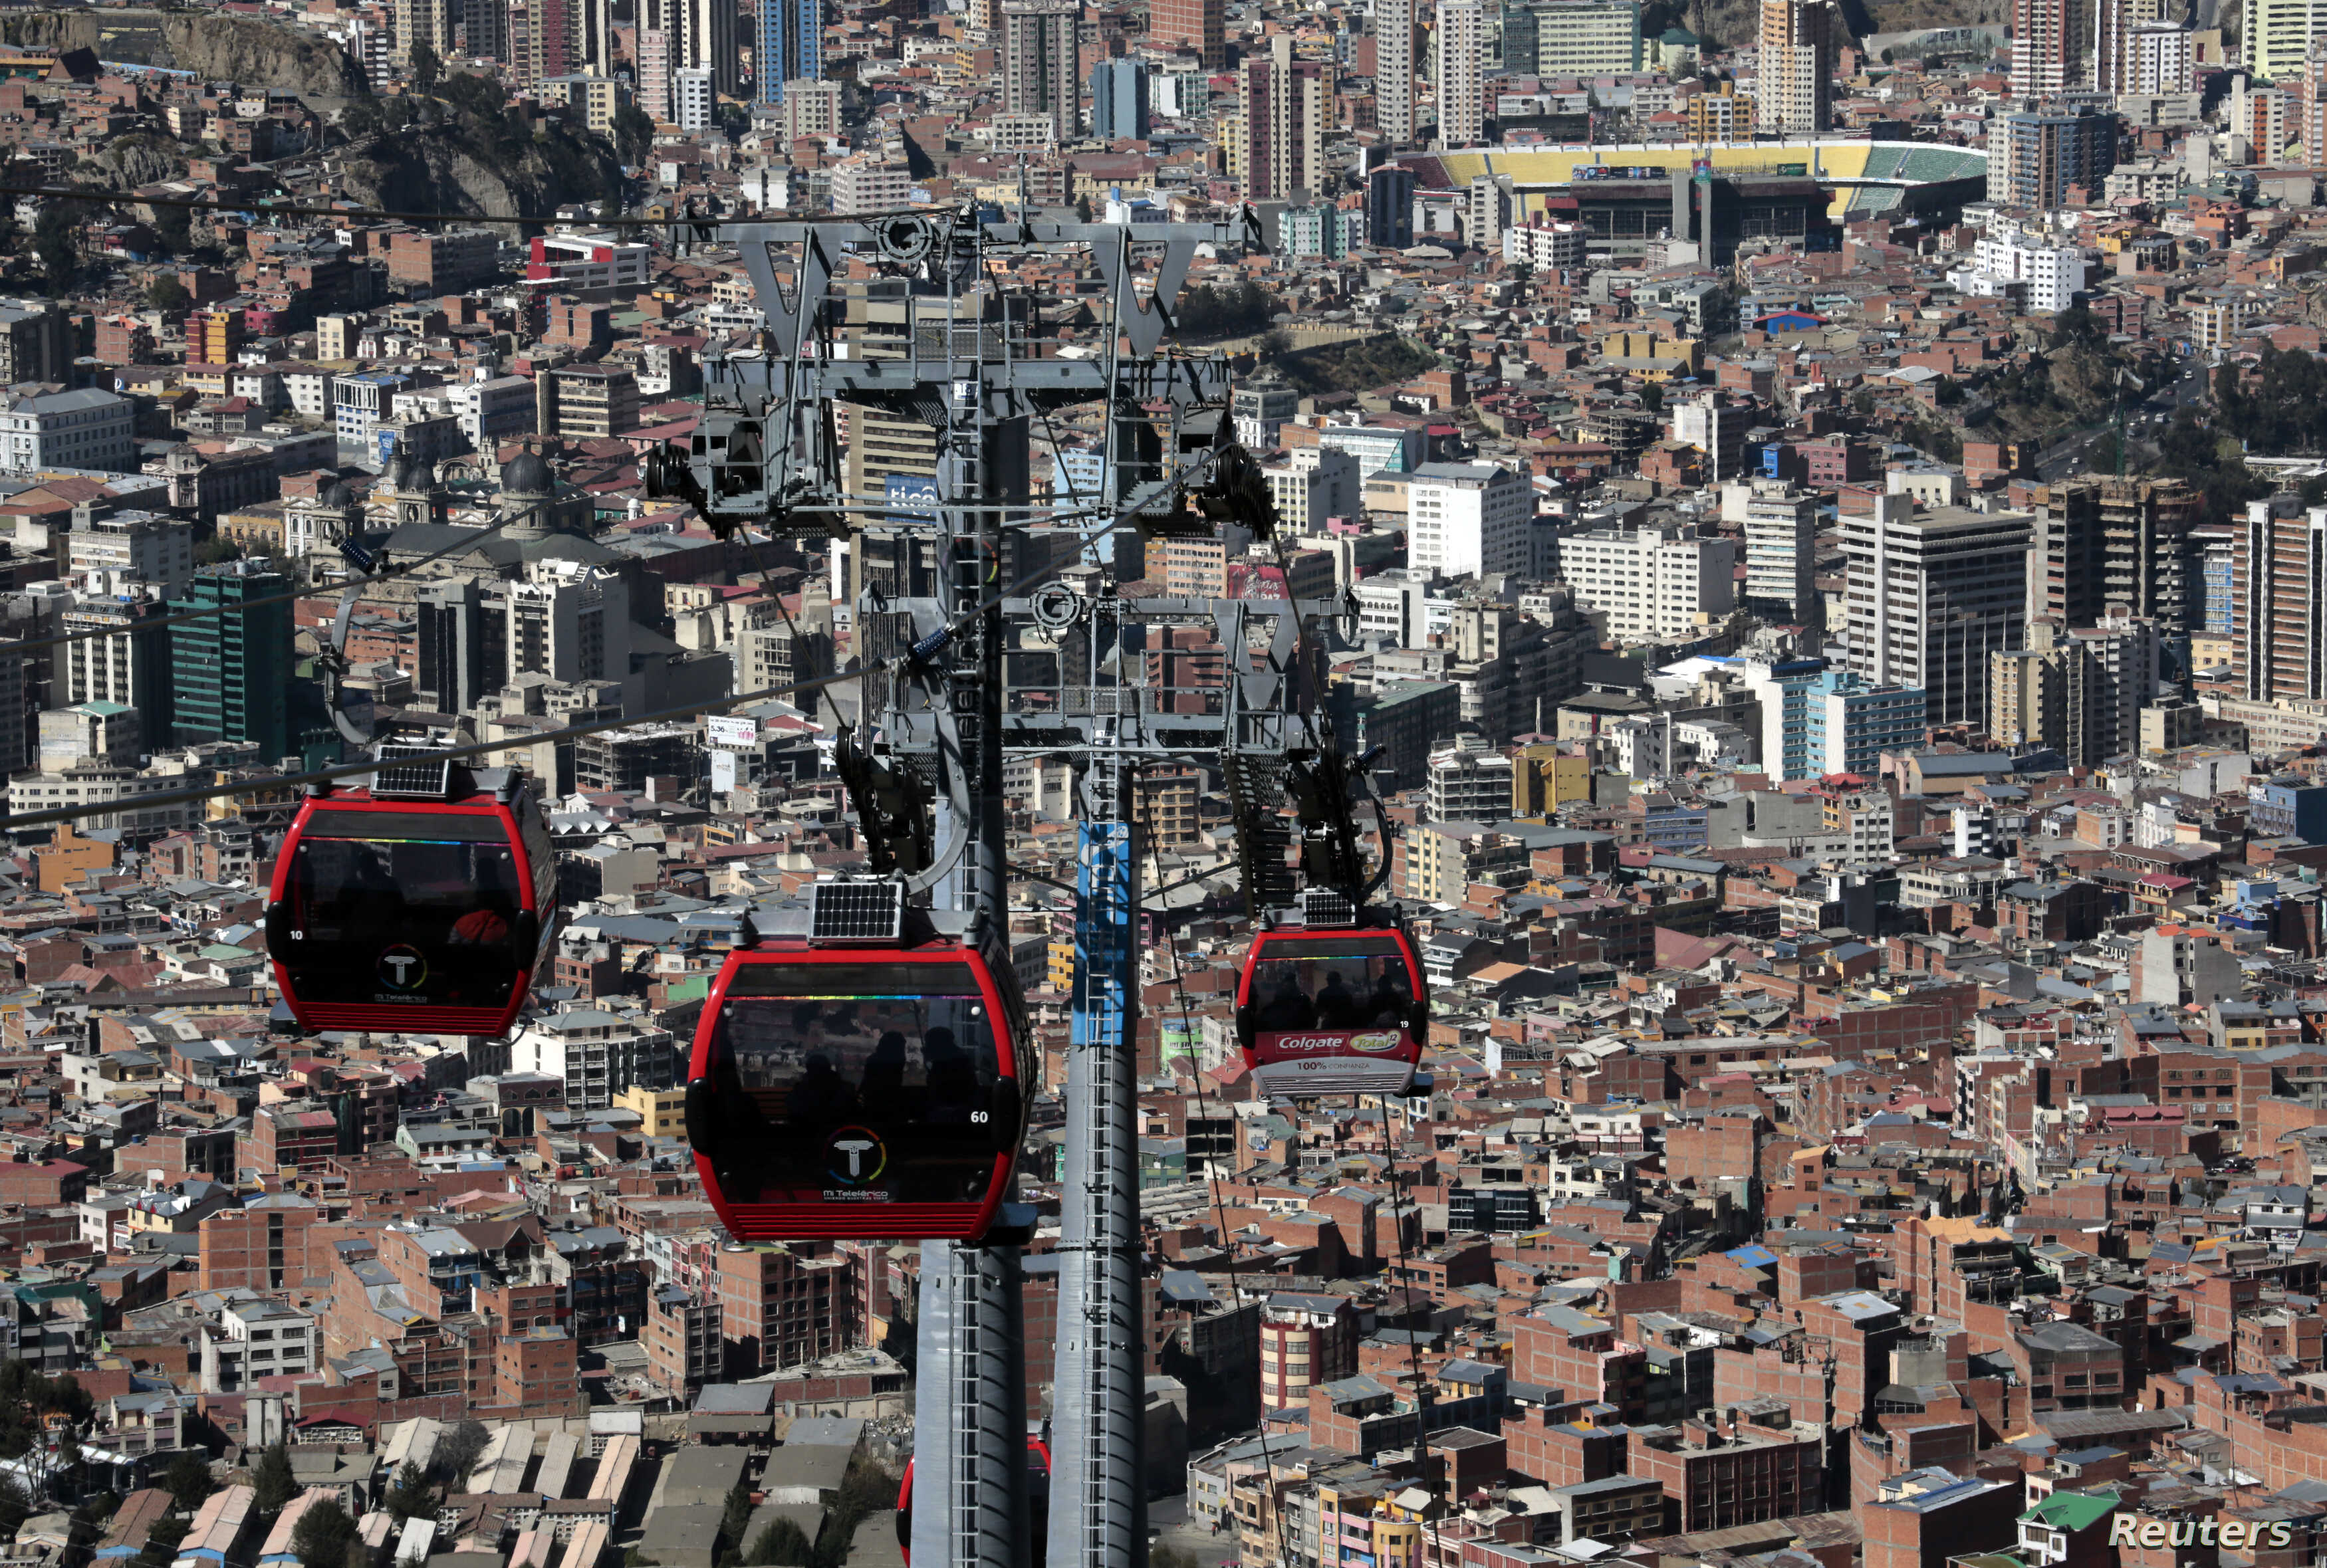 Cable cars travel over La Paz, Bolivia, July 23, 2015. Bolivia already has the largest urban cable car system in the world.